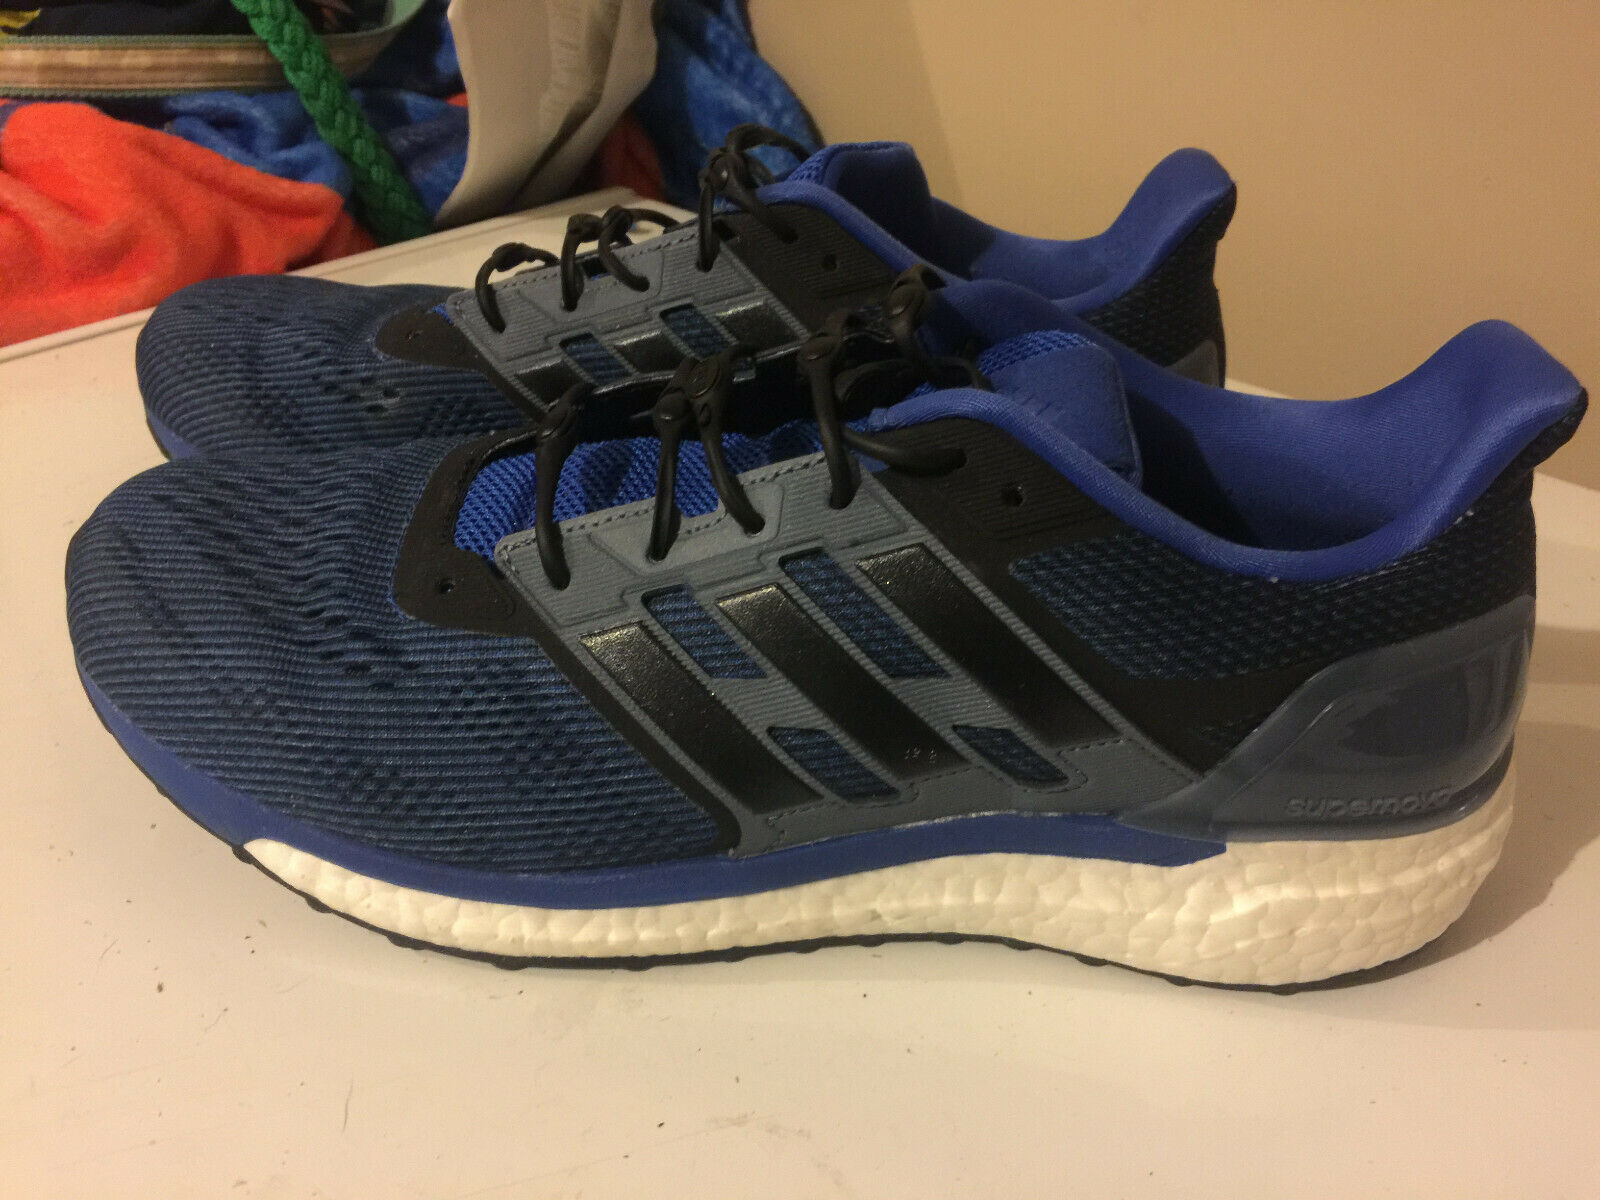 58f7adf1718 Adidas Men's Ultraboost Running shoes Size Navy (11) 11 noskti1640-Athletic  Shoes